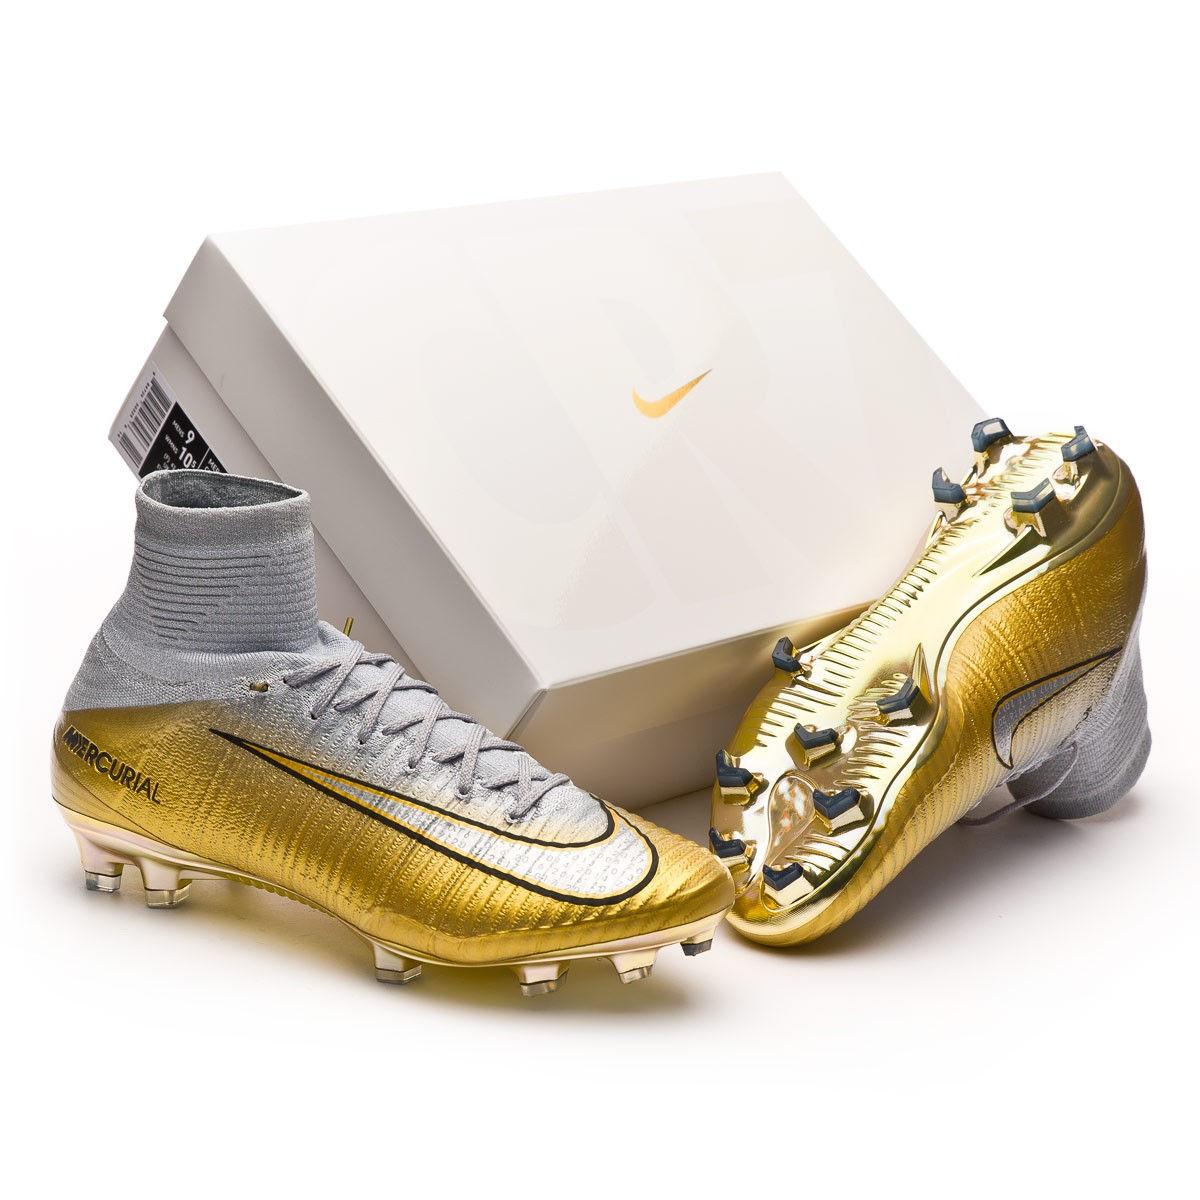 94f30957d39 Mercurial Superfly V CR7 Quinto Triunfo FG Pure platinum-Metallic silver-Wolf  grey